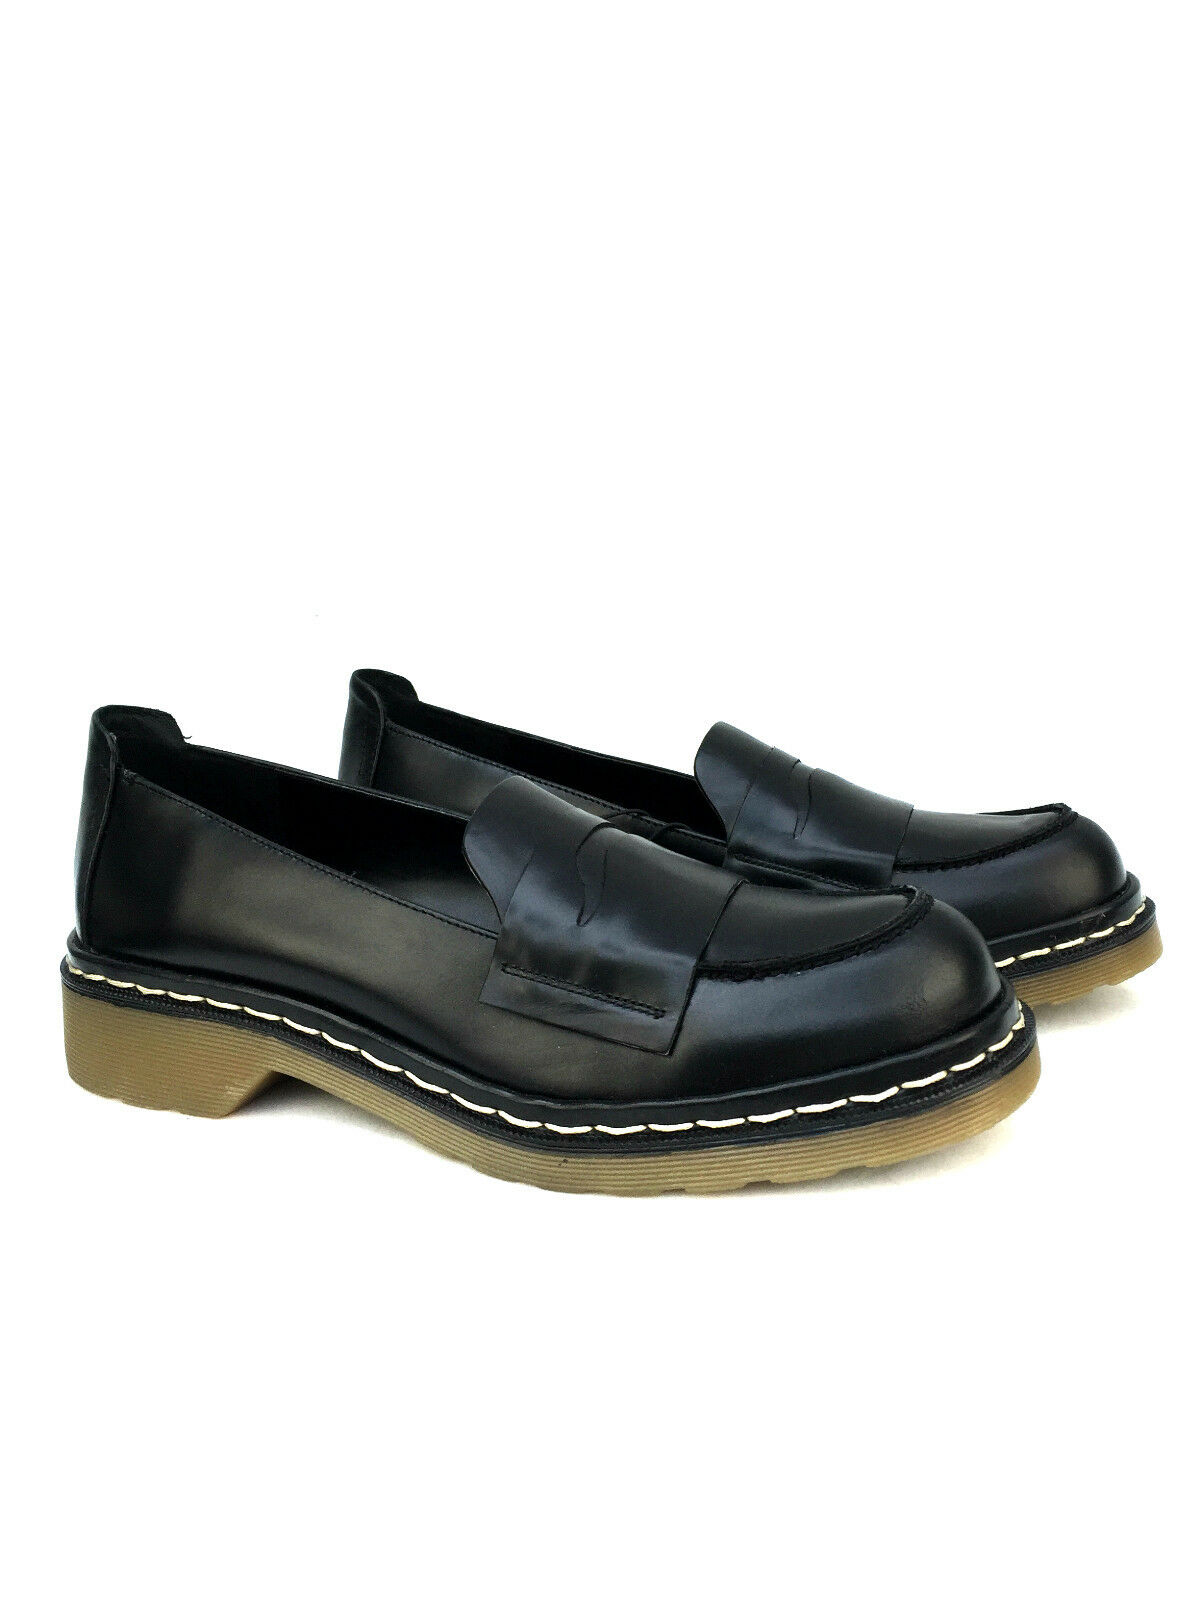 ZARA BLACK LEATHER MOCCASIN SHOES FLATS LOAFERS SIZE 37 39